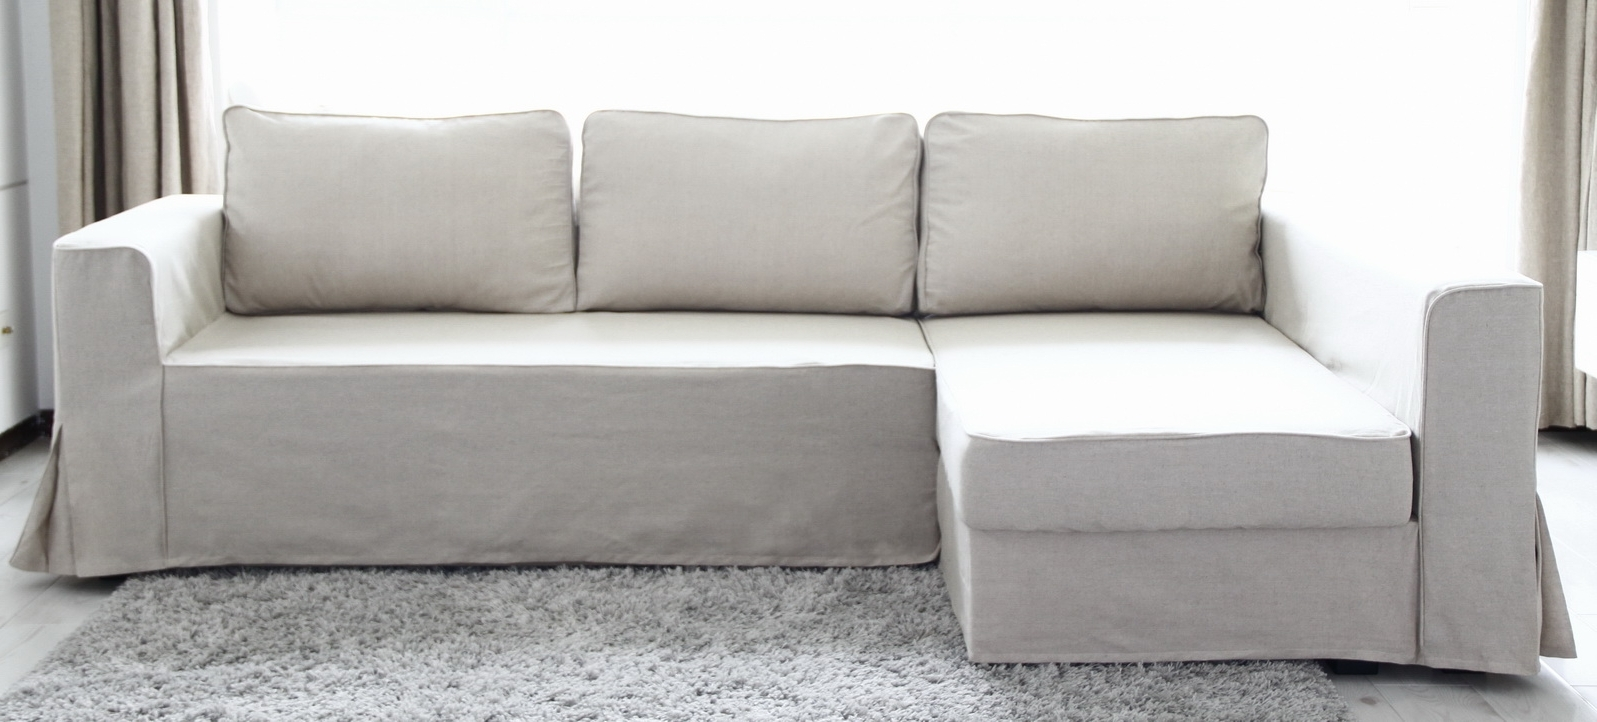 Manstad Sofas Intended For Most Up To Date Loose Fit Linen Manstad Sofa Slipcovers Now Available (View 10 of 15)